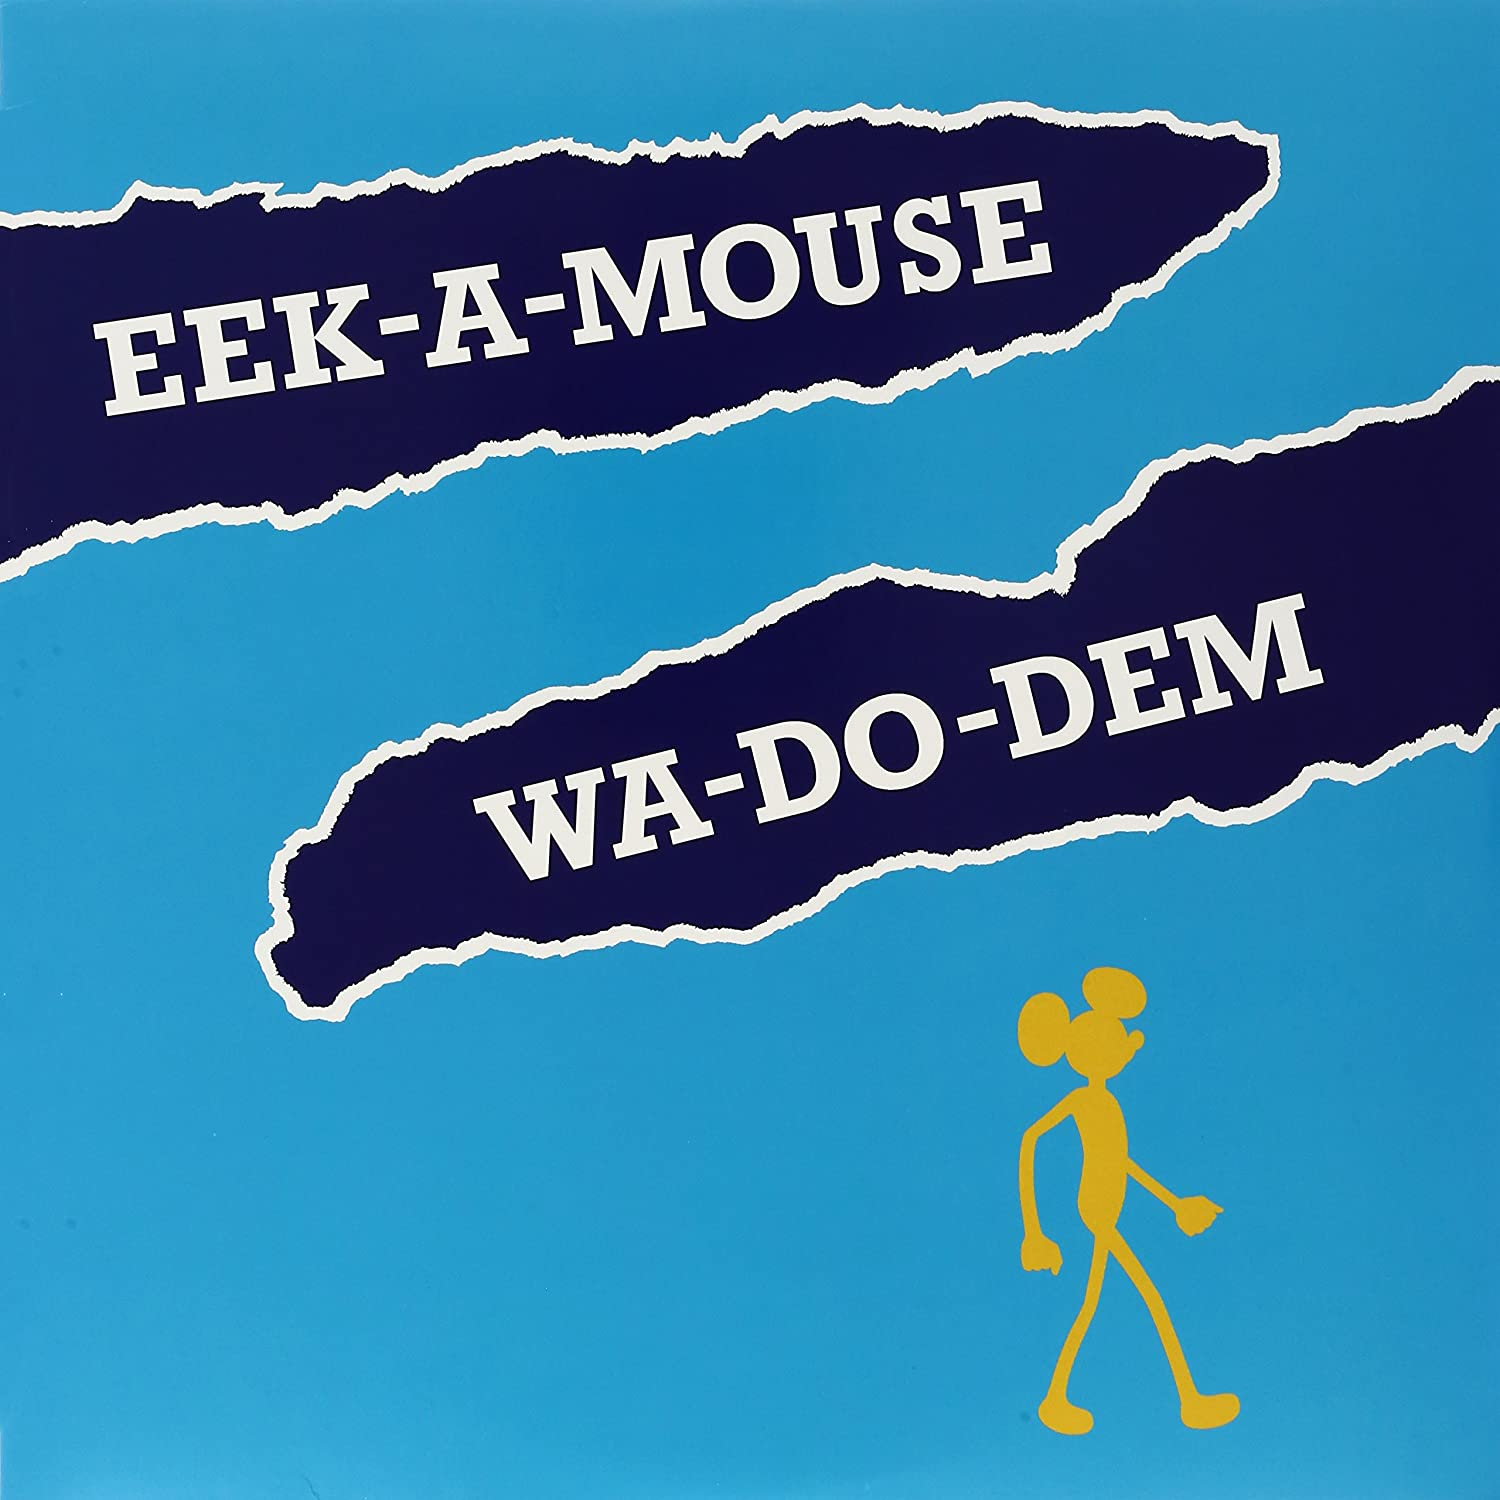 Eek-A-Mouse - Wa-Do-Dem